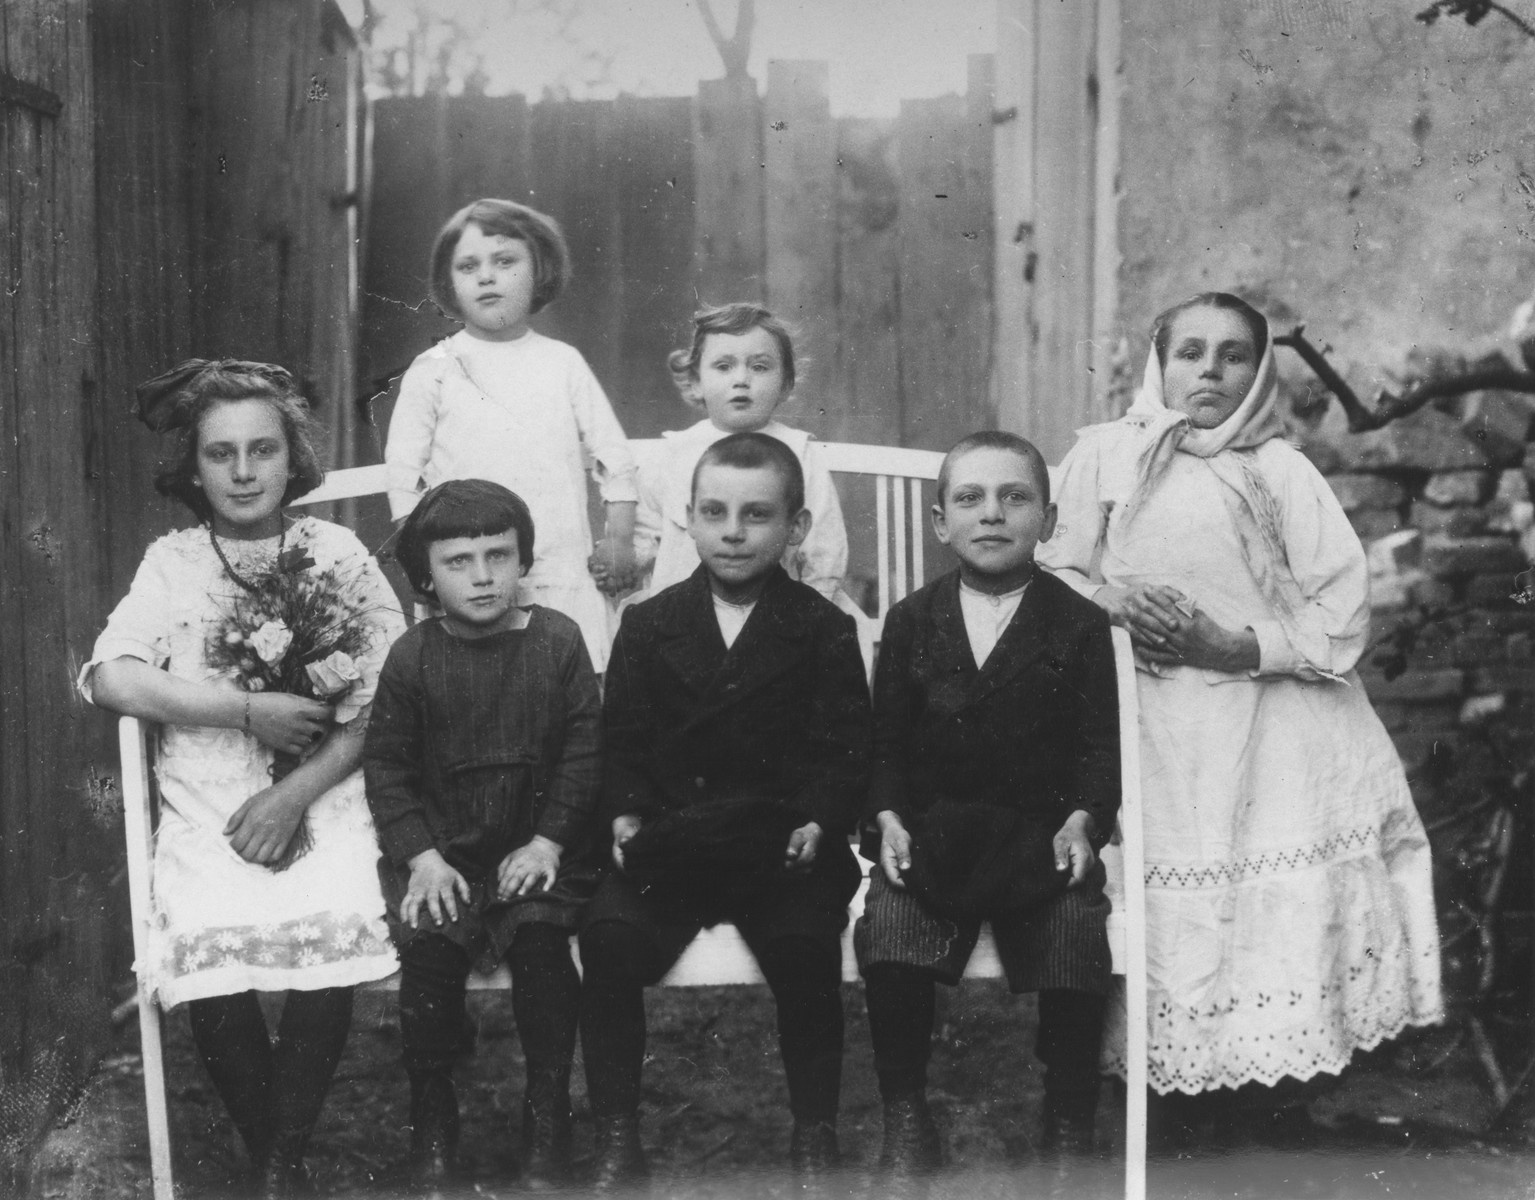 Portrait of the Stapler family outside their home in Chrzanow.  Pictured from left to right are Blimcia, Nachcia, Shlamek, and Heshek.  Top row, Goldzia and Vrumek.